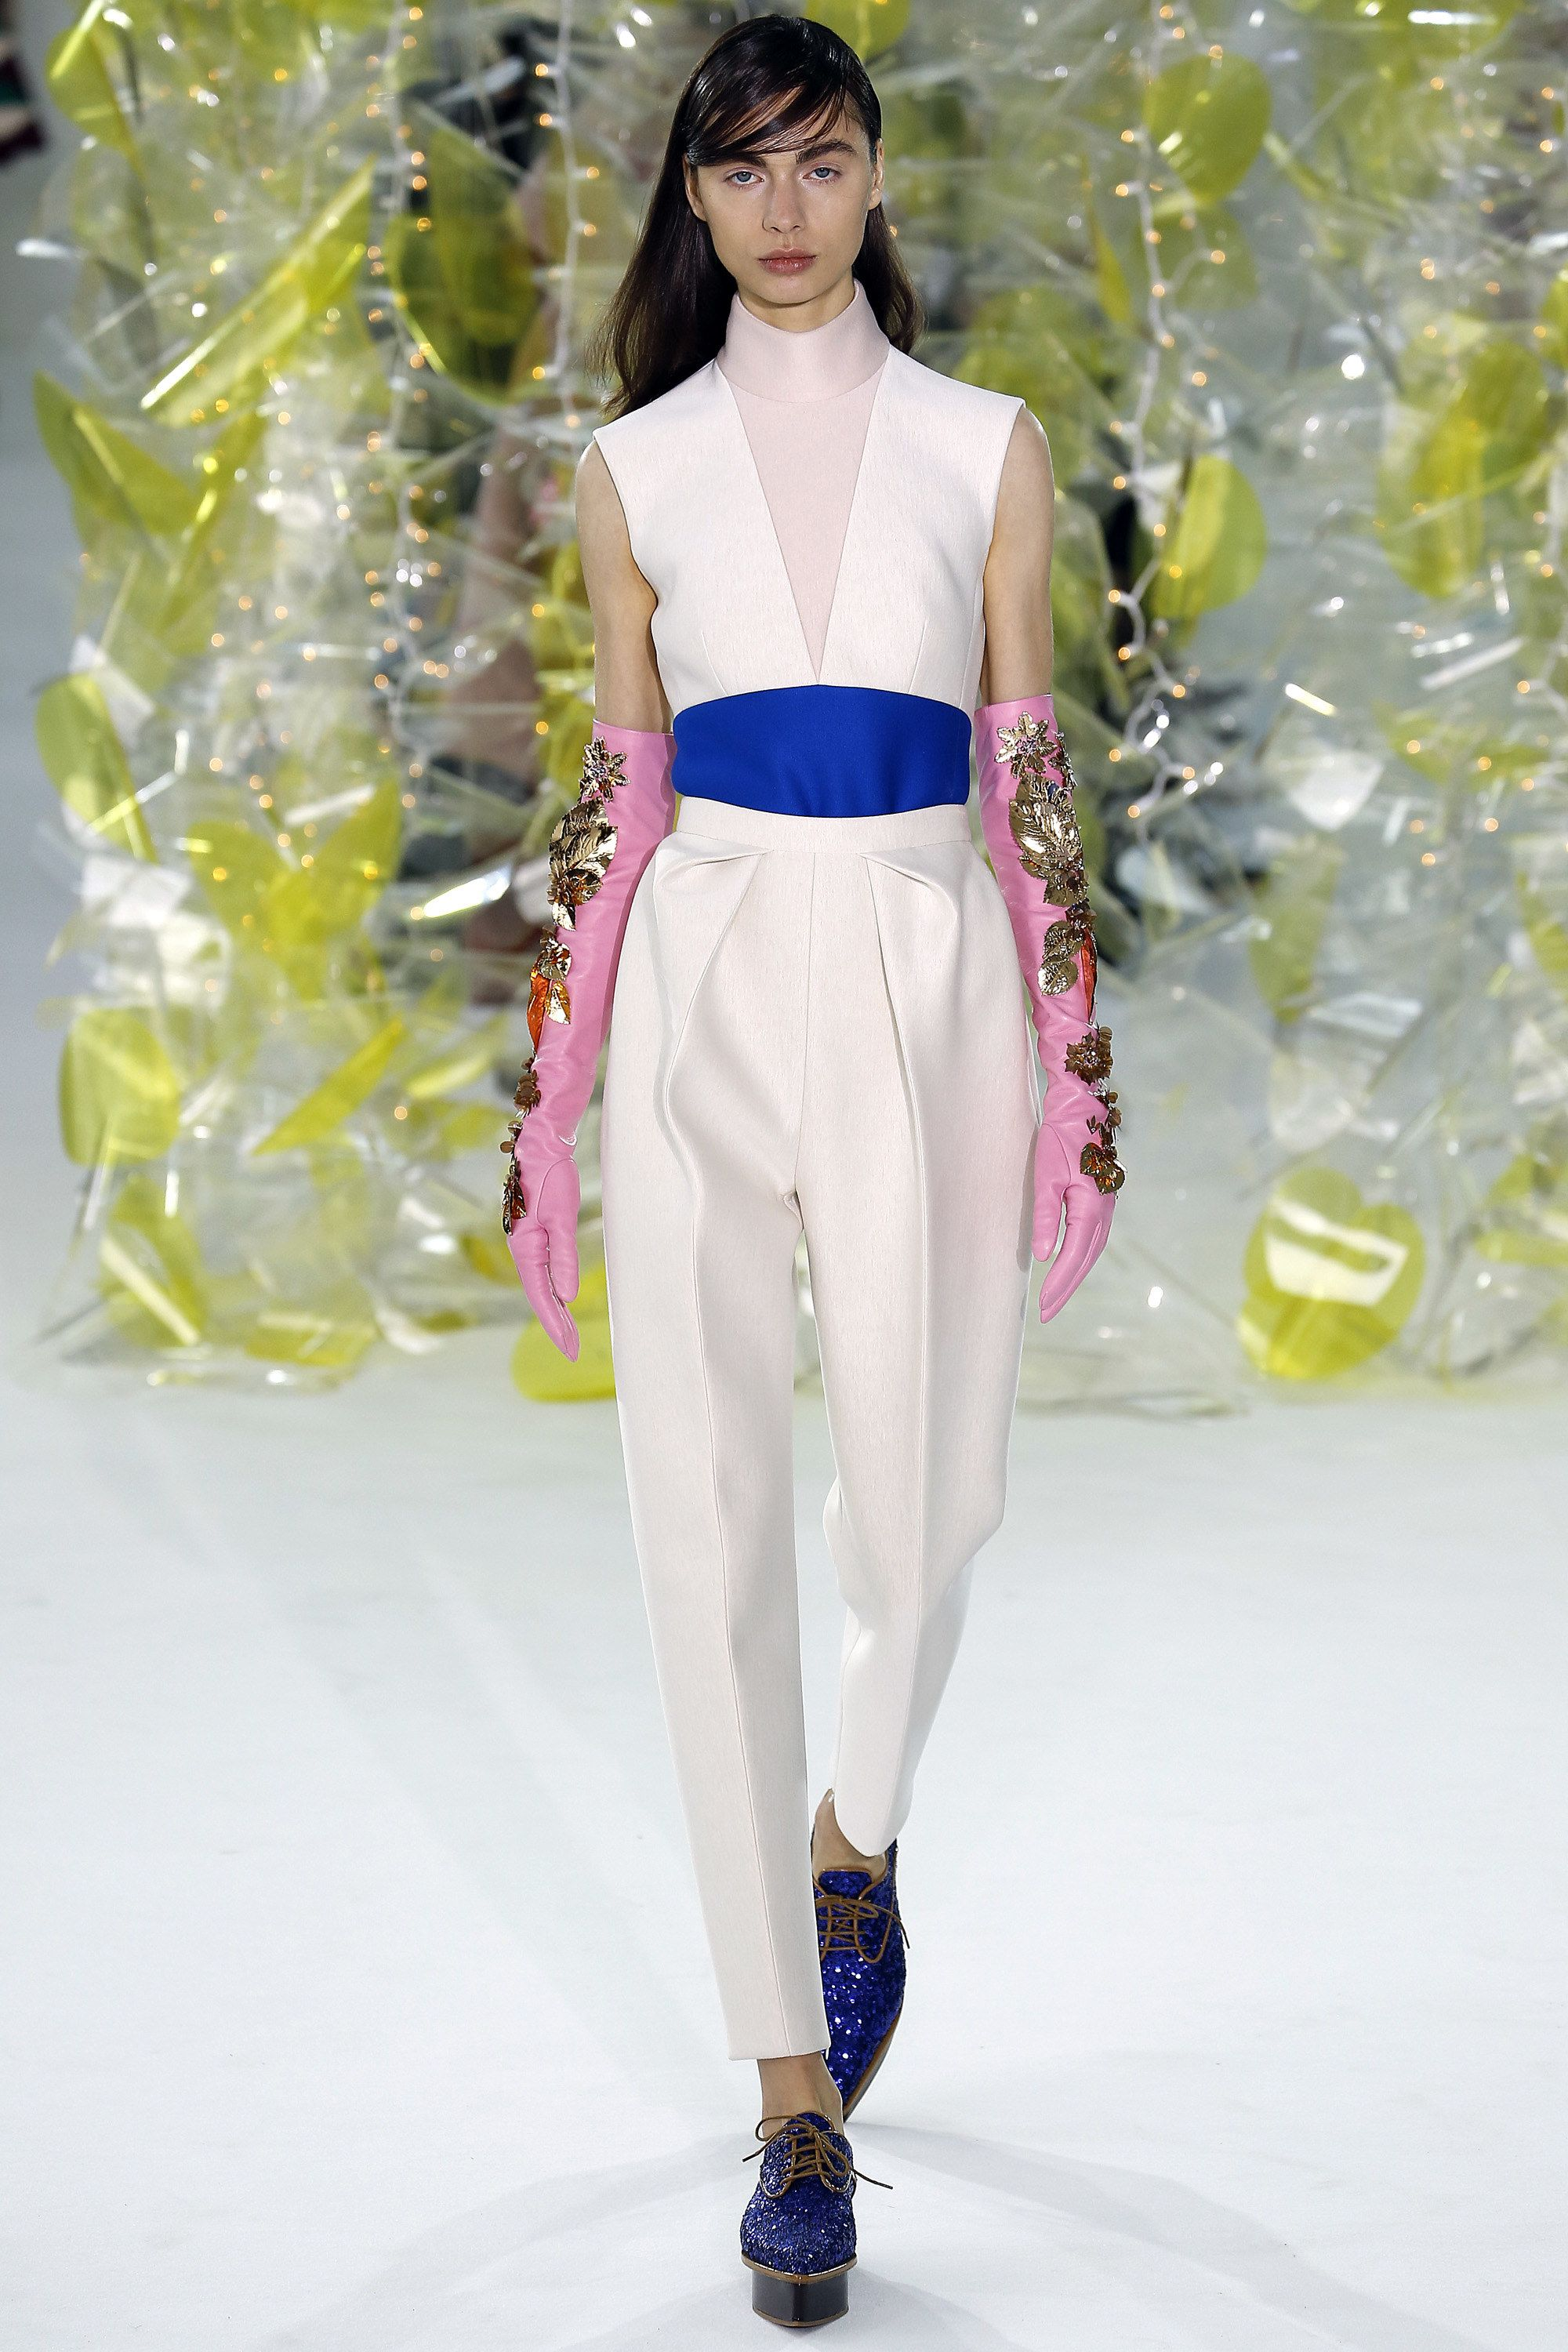 to wear - Show Review: Delpozo Fall 2014 video